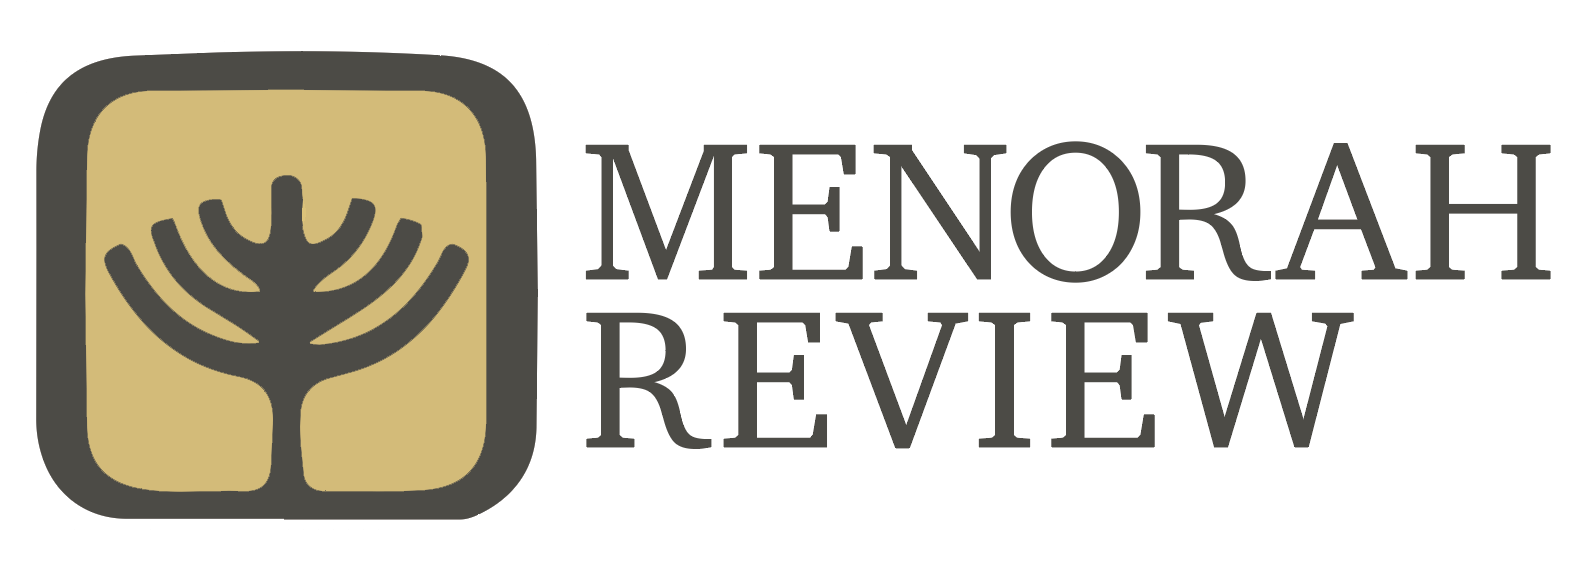 Menorah Review